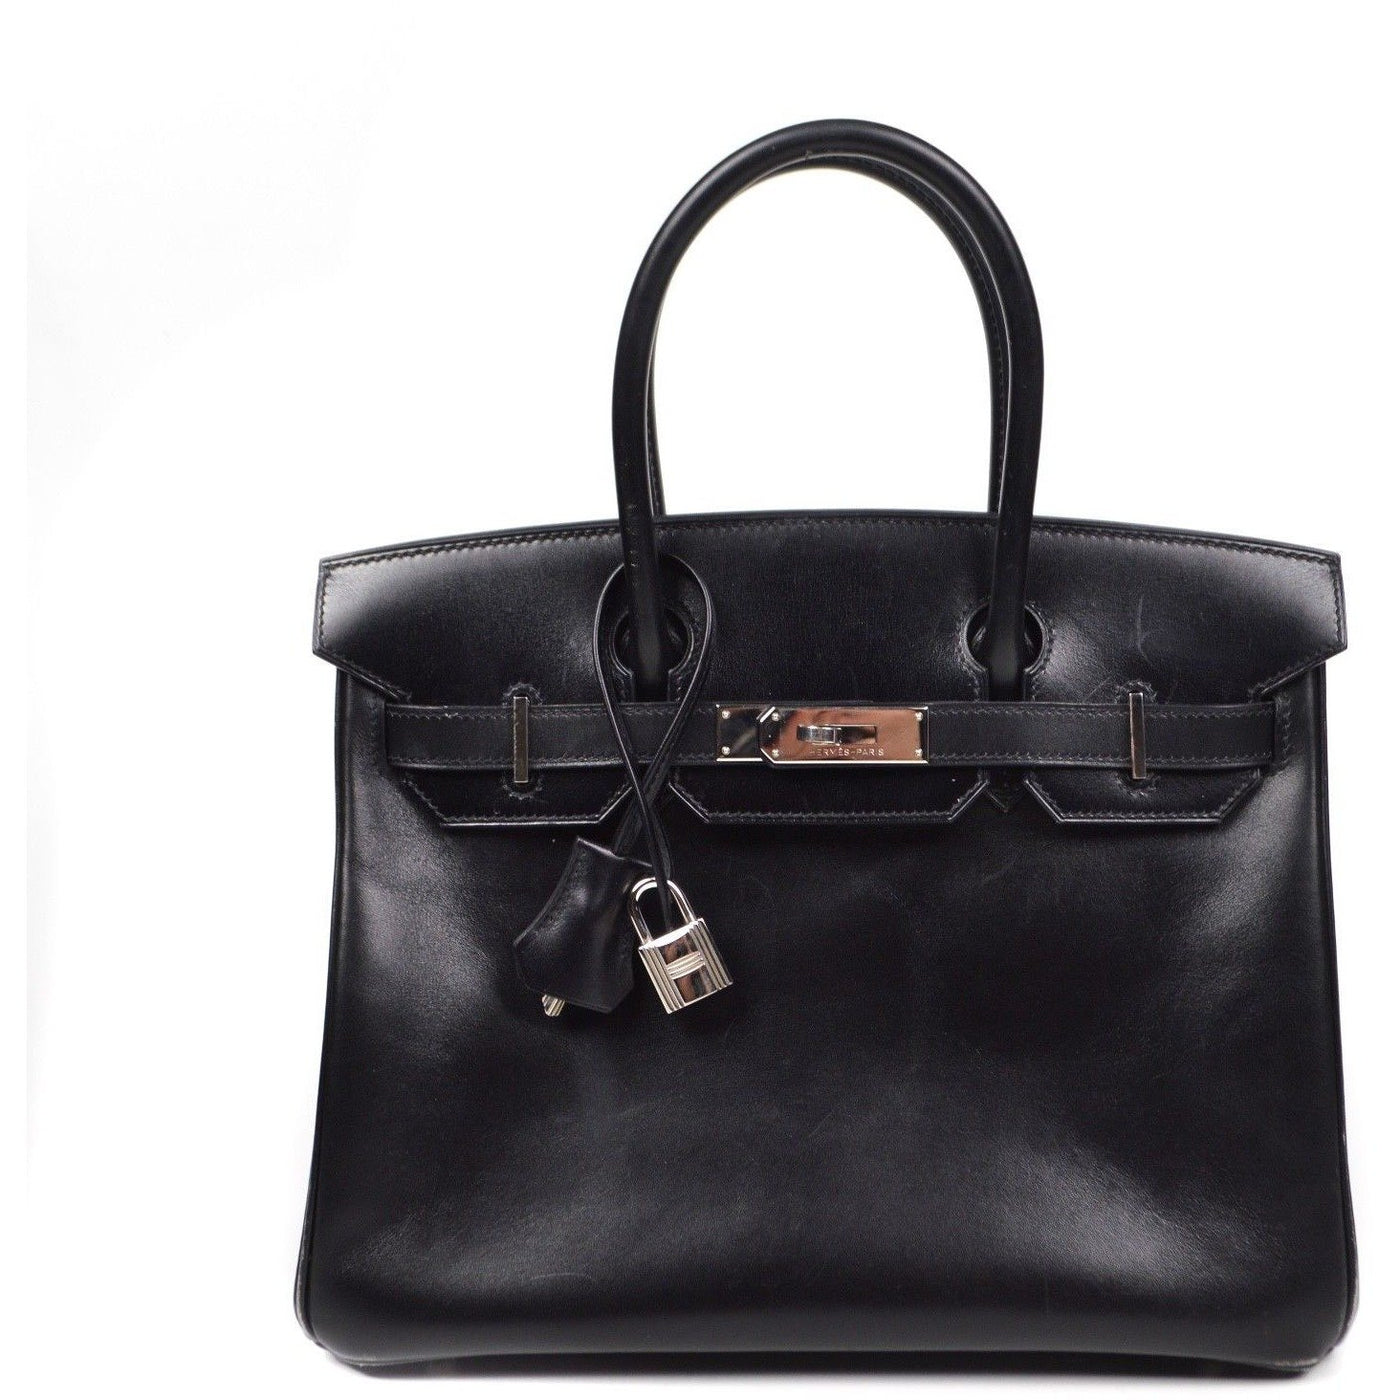 8c68708c8e How to Authenticate a Hermes Bag when Using Online Luxury Consignment